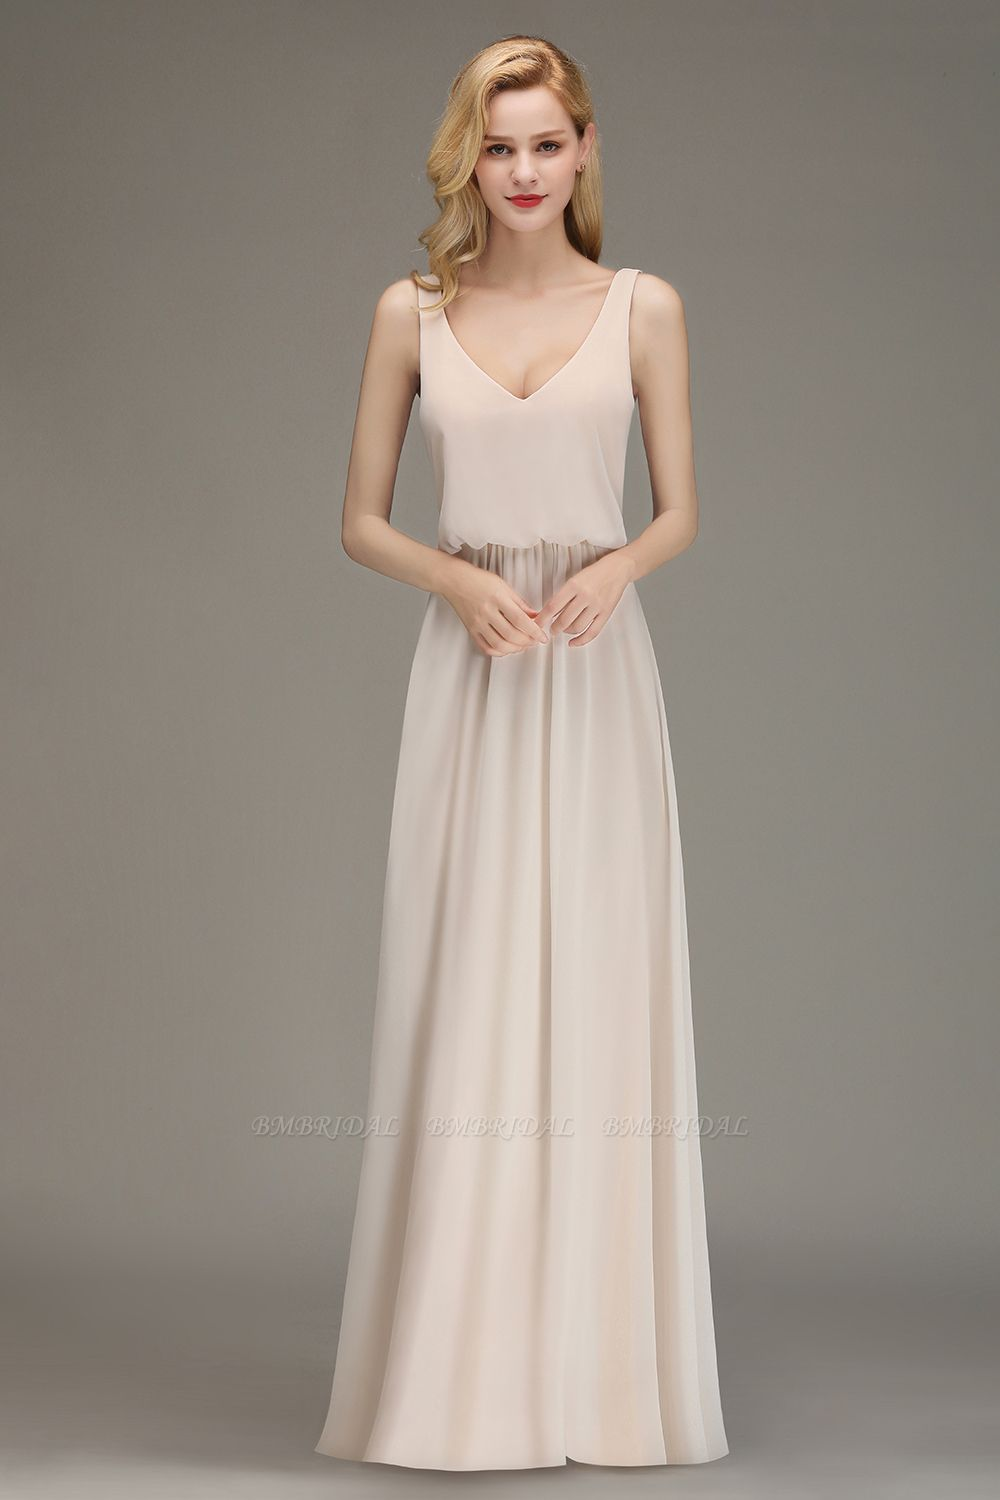 Elegant Straps V-Neck Long Affordable Bridesmaid Dresses with Ruffle